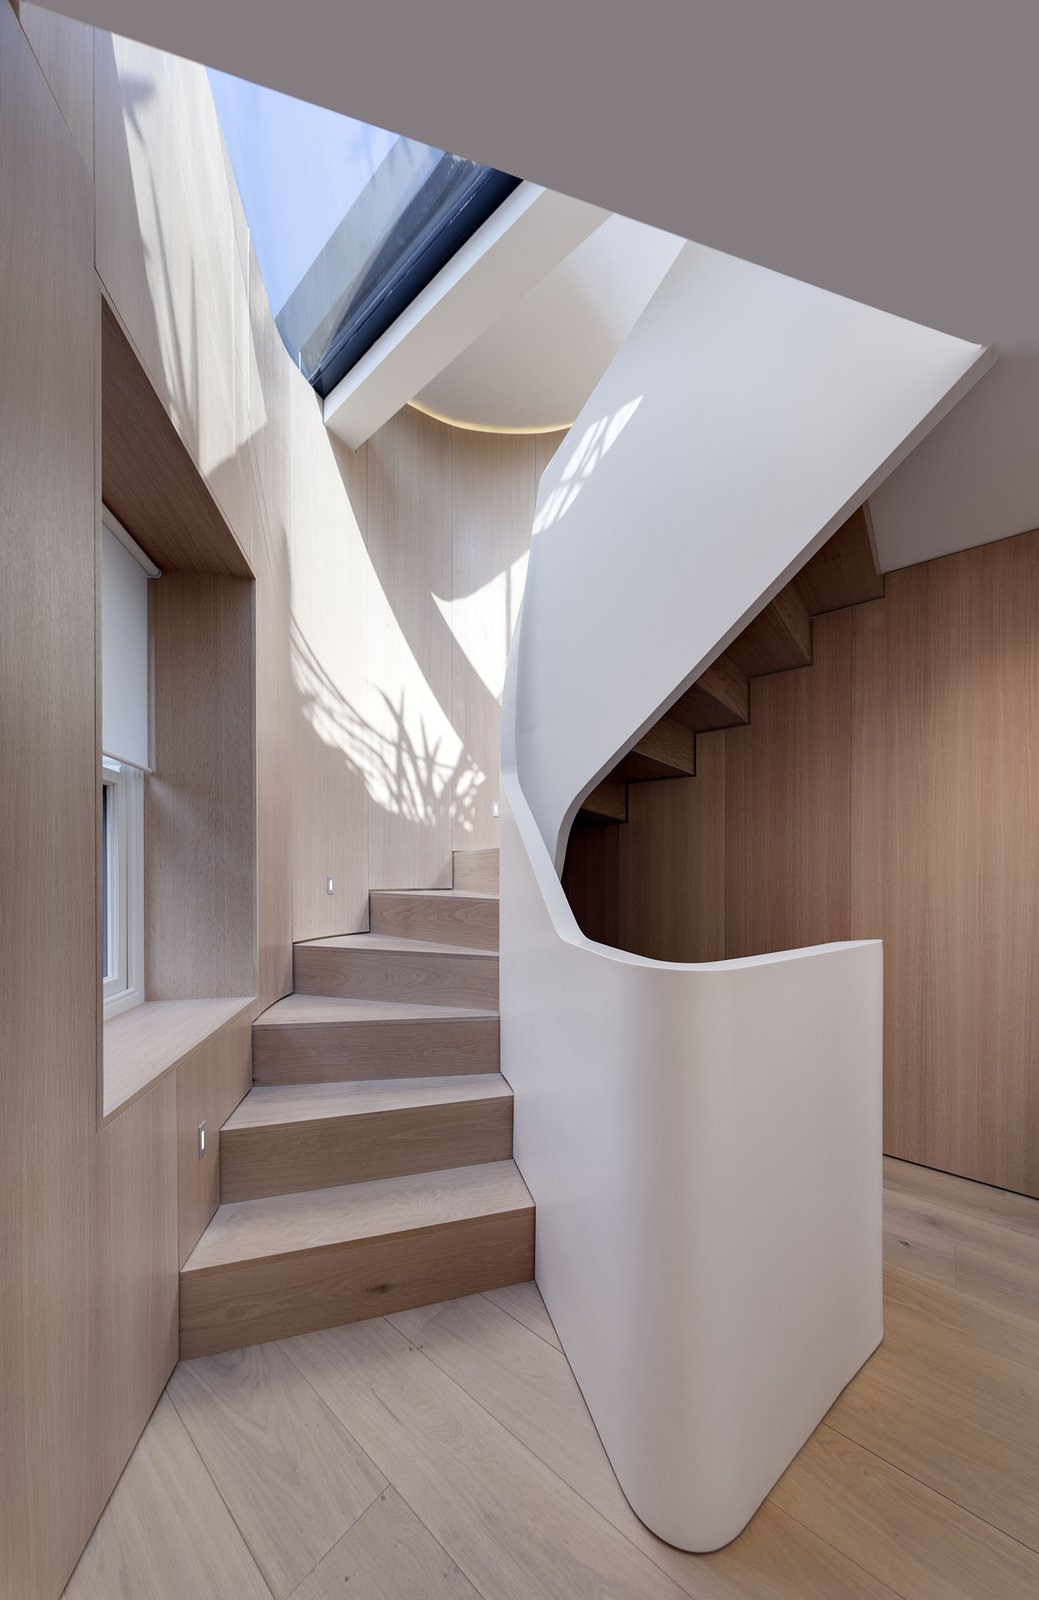 FORMstudio designed an acrylic balustrade that winds up the 1,647-square-foot home's five levels. The flooring throughout is white oak.  190+ Best Modern Staircase Ideas from Amazing Five-Story Staircase Twists Through a Narrow London Home